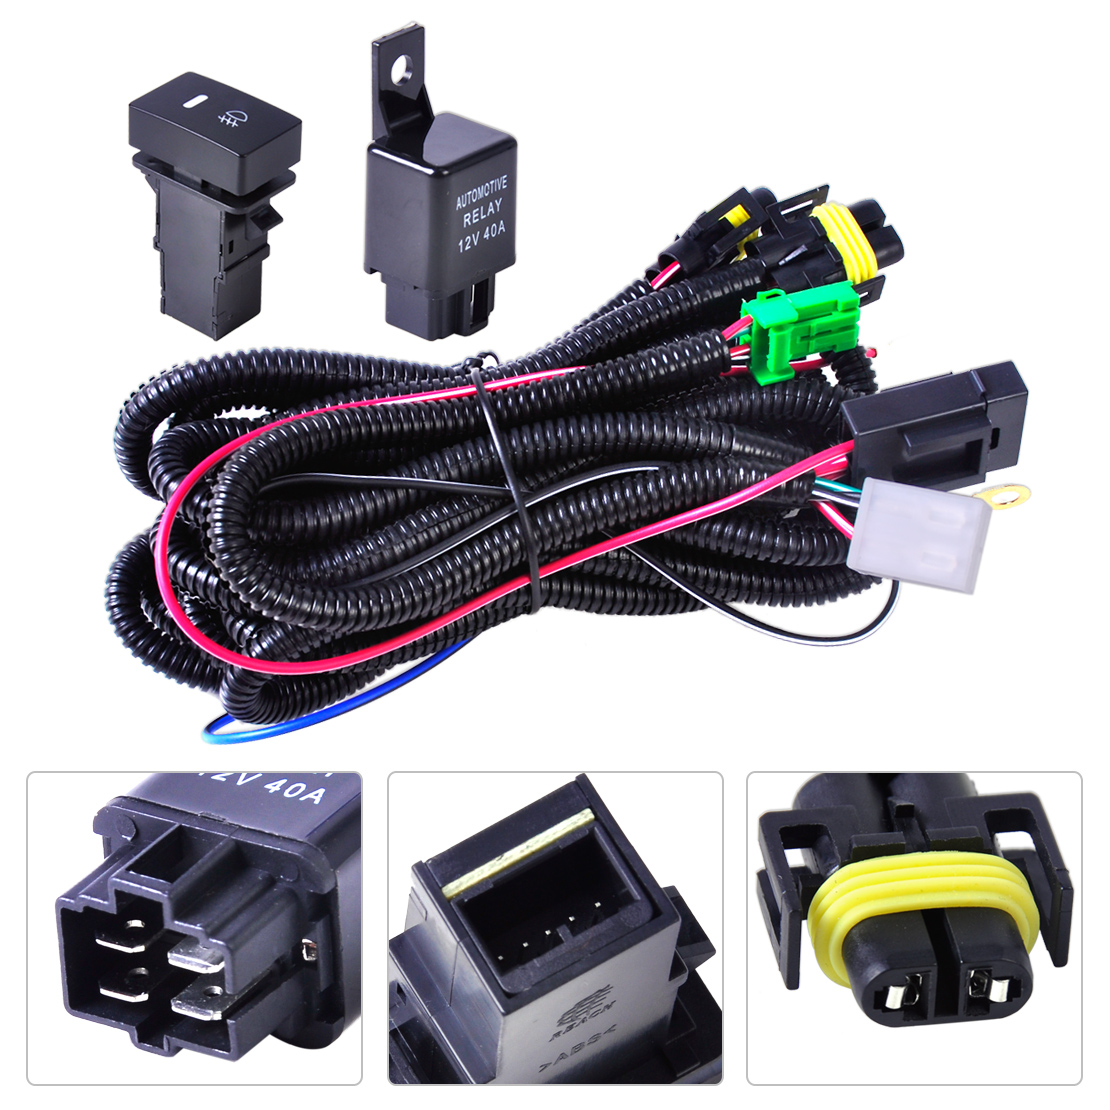 beler Wiring Harness Sockets Wire and Switch Fog Light Lamp for Ford Focus  Acura TSX Nissan